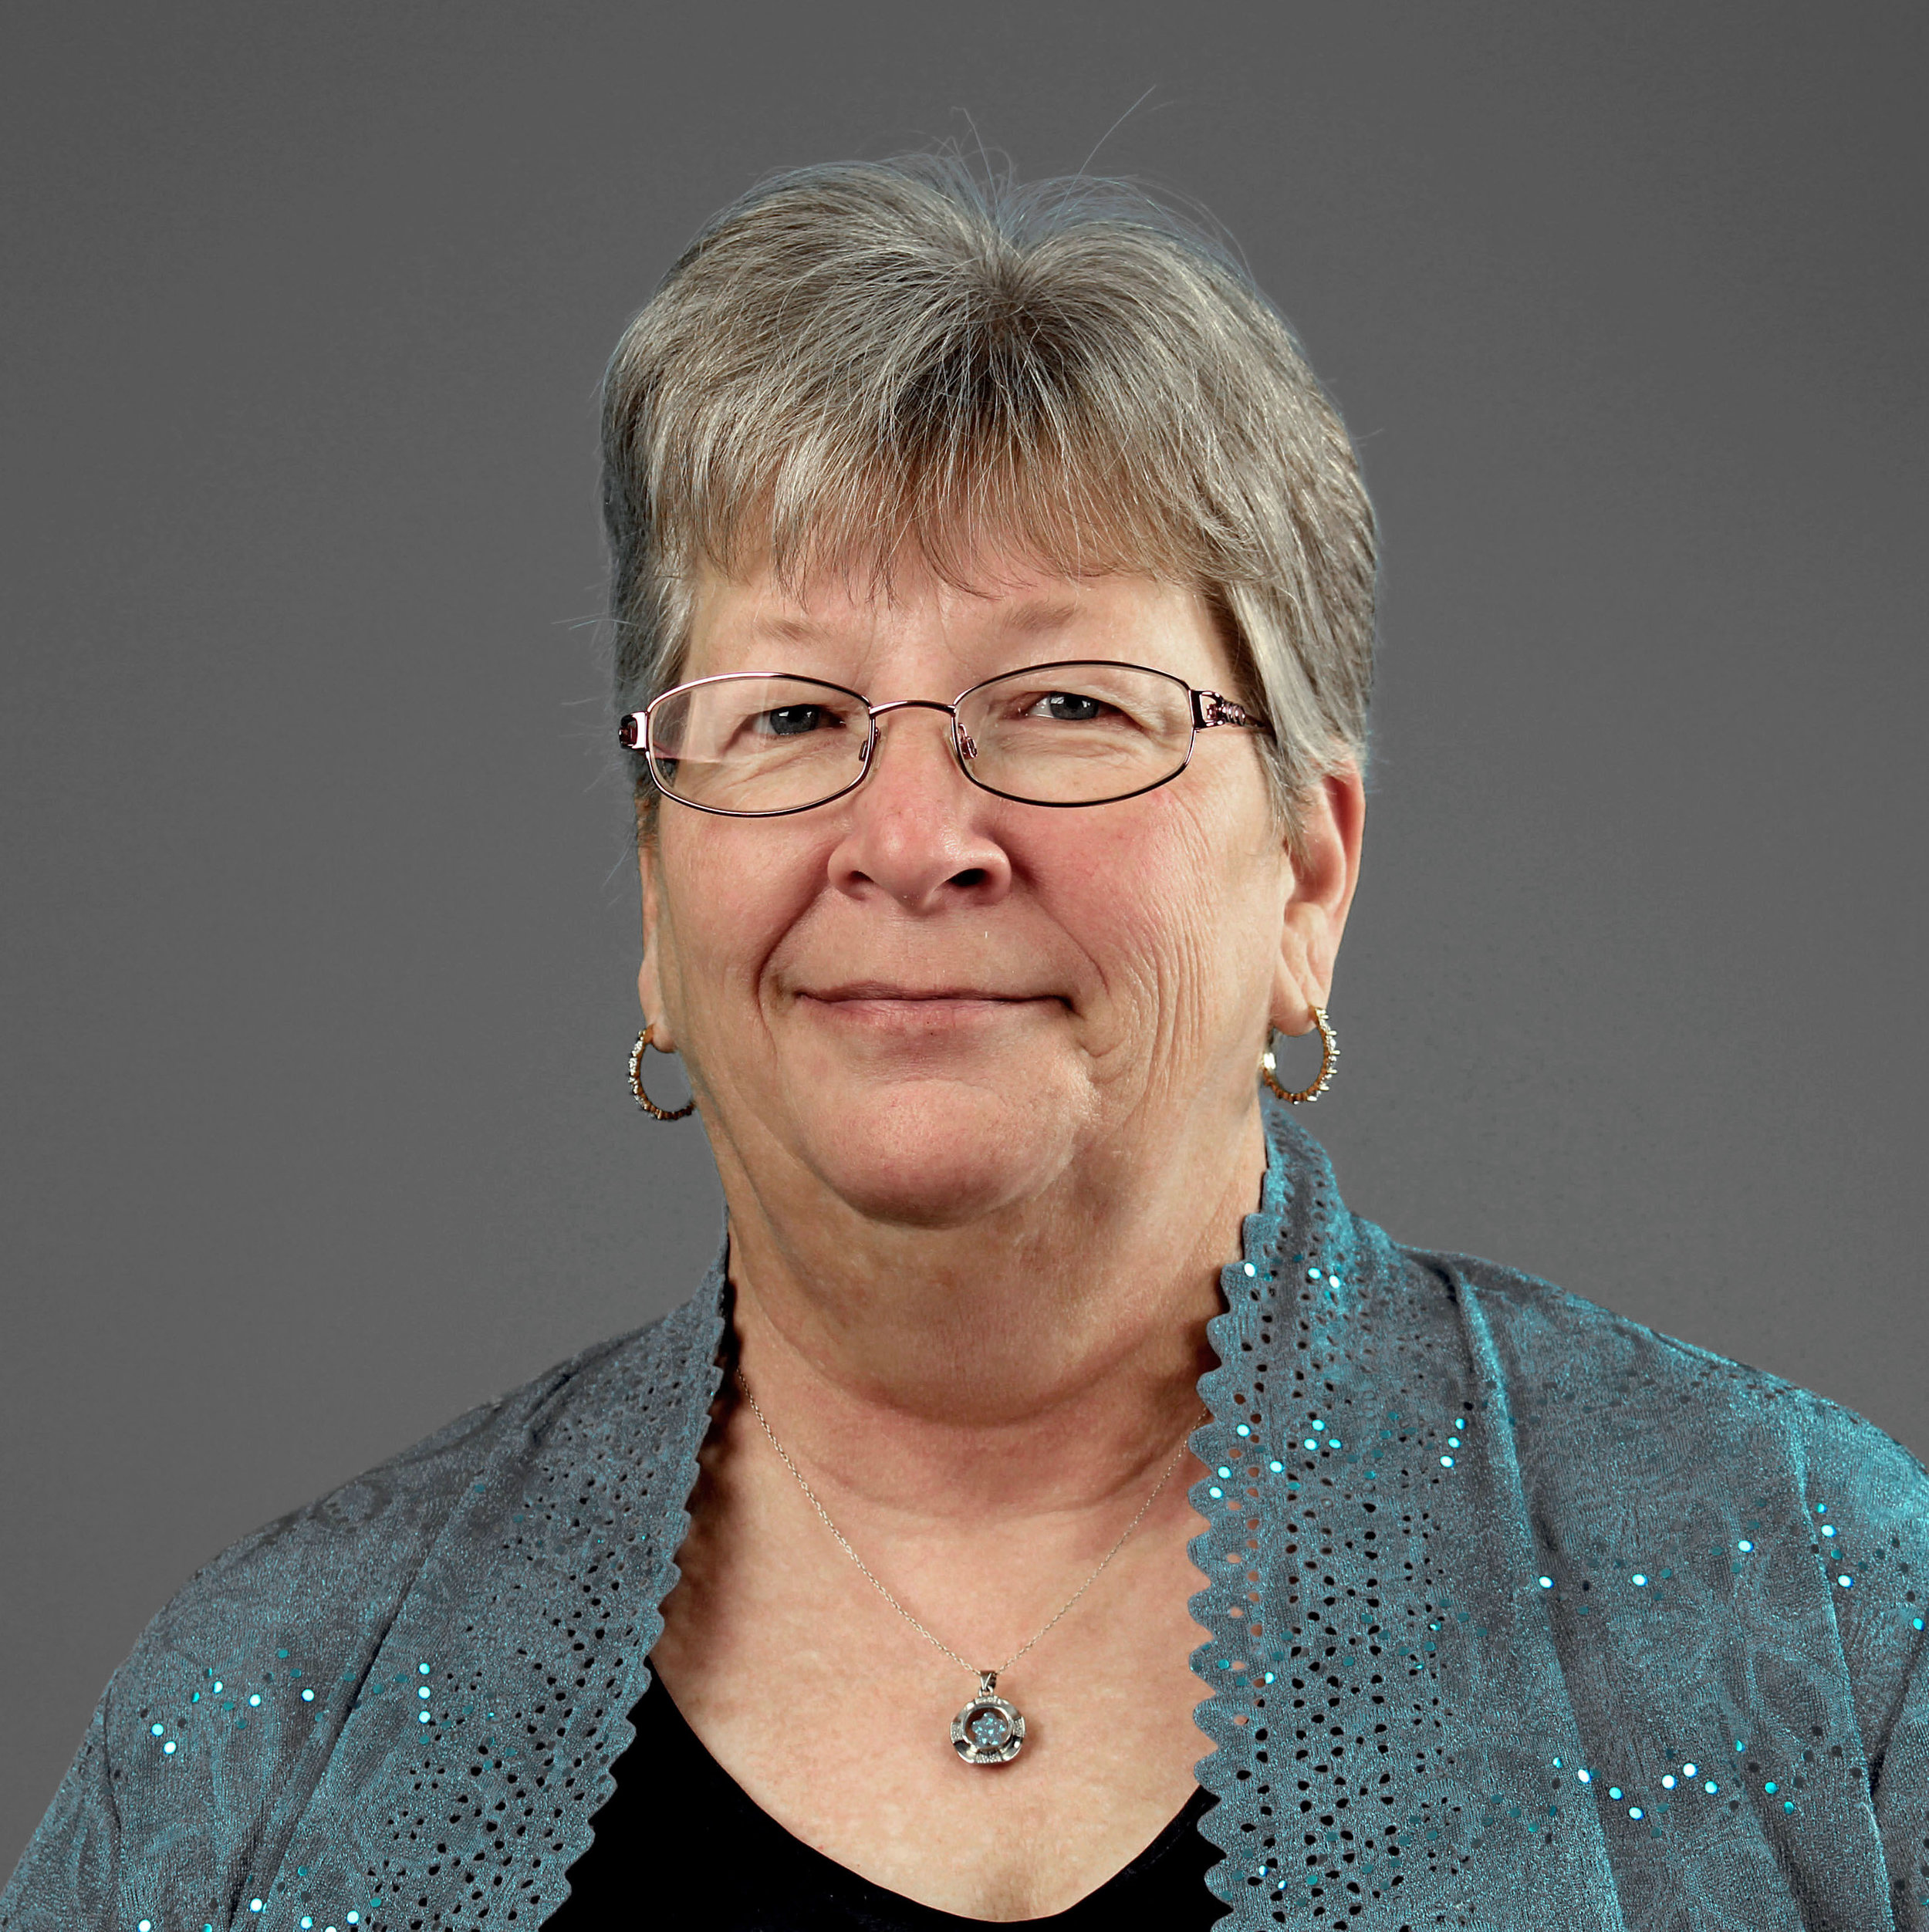 Bonnie Rybak - Administrative Assistant for Clergy, Consecrated Life & Vocations